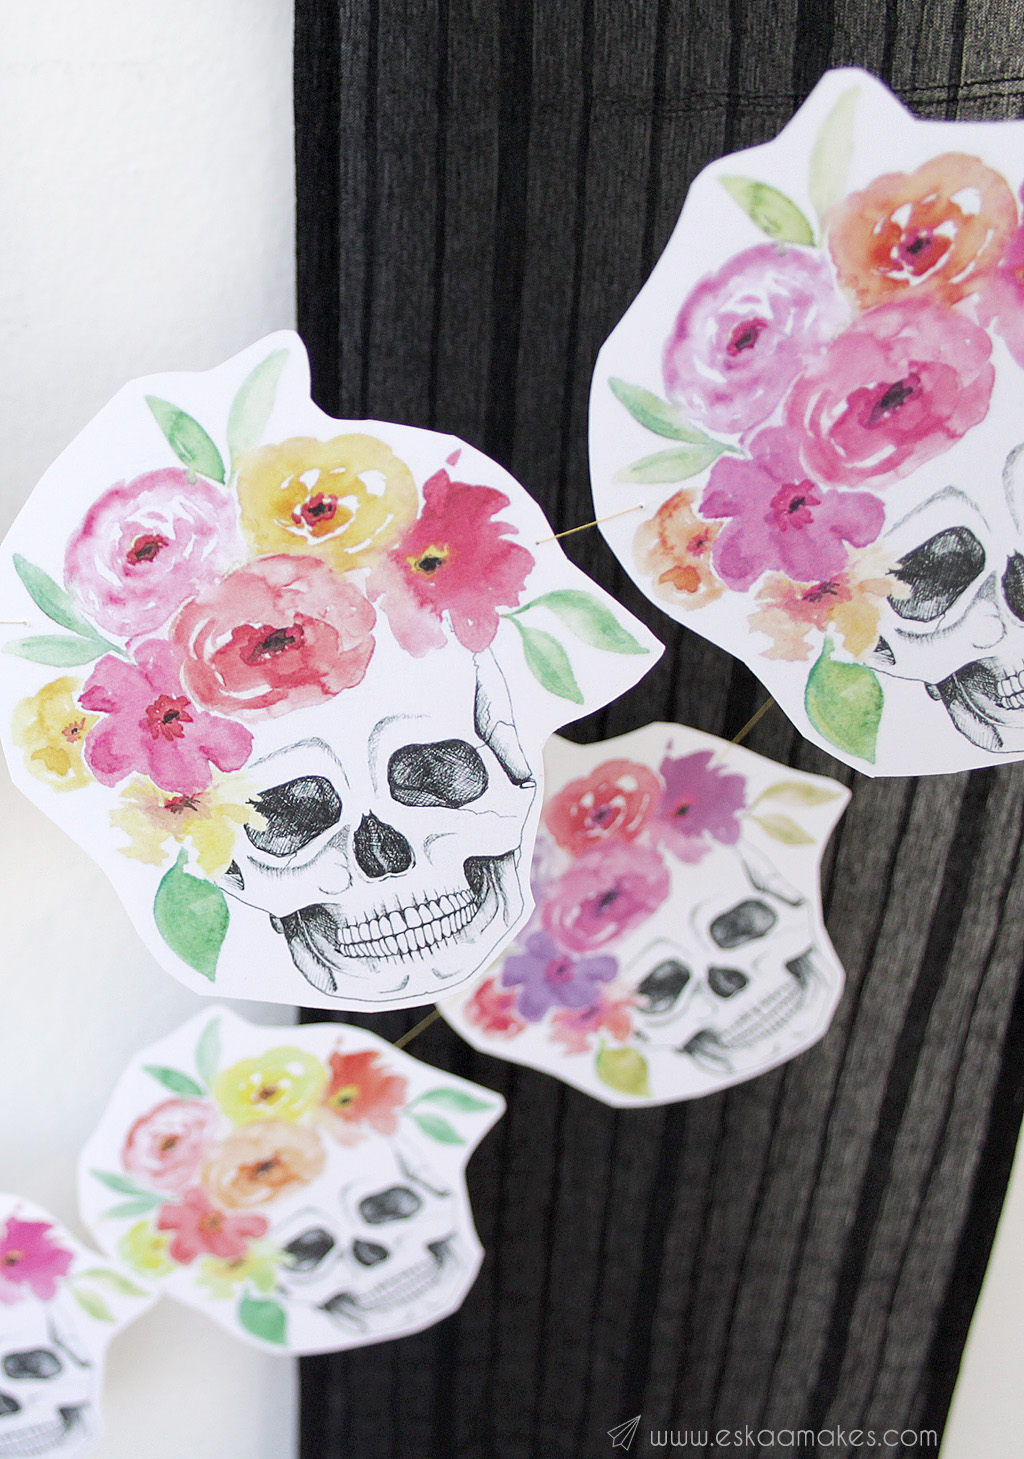 diy-flower-crown-skull-garland-8